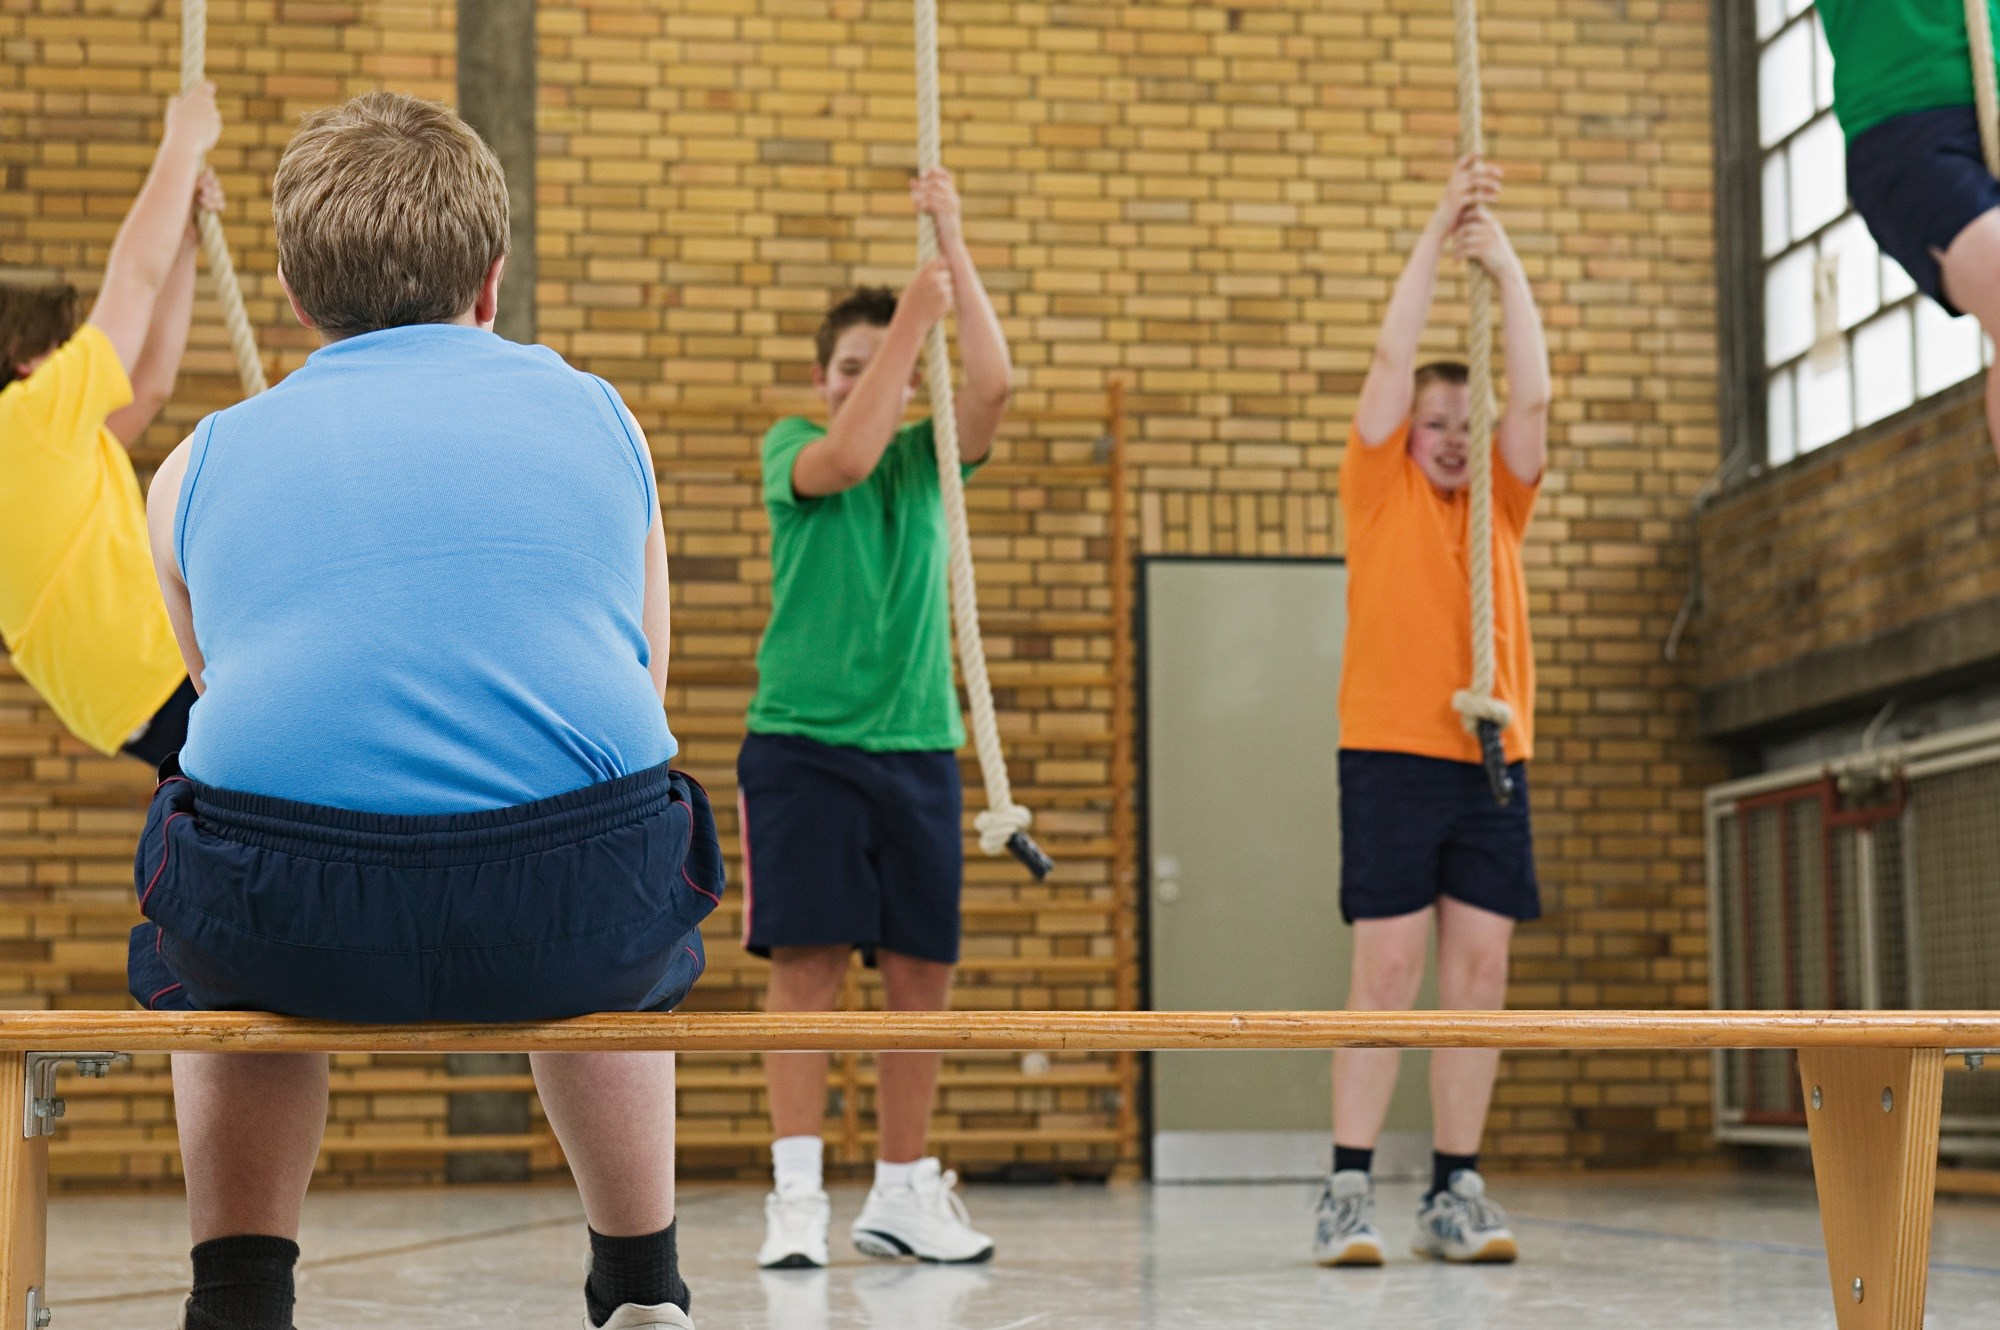 Weight Gain in Childhood Persists As Overweight, Obesity in Adolescence